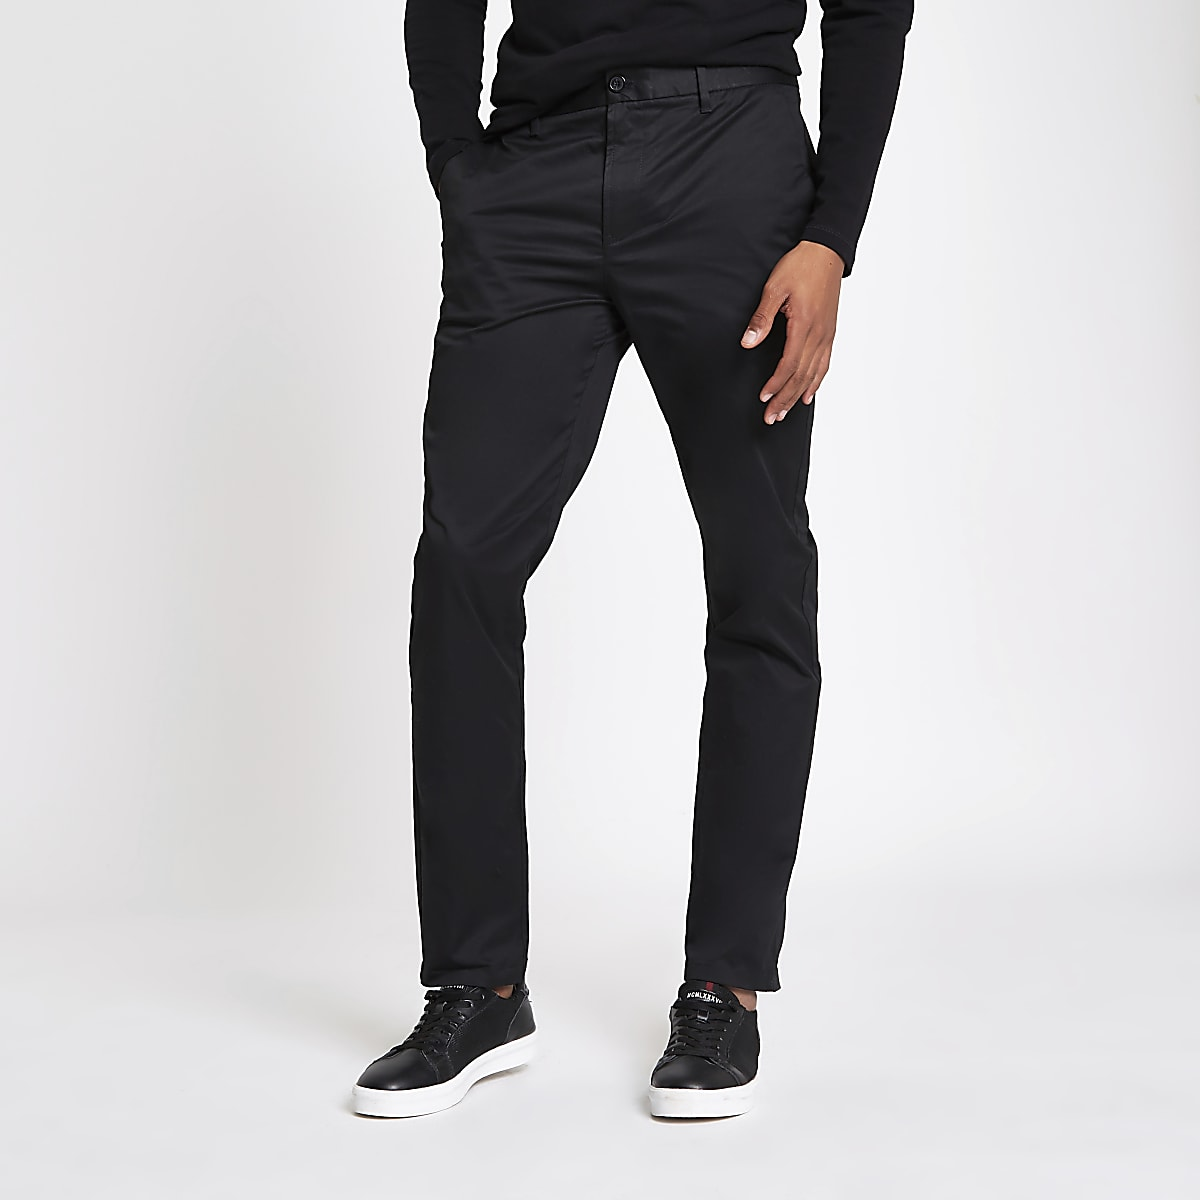 f3ee010c47ff75 Black slim fit chino trousers - Chinos - Trousers - men